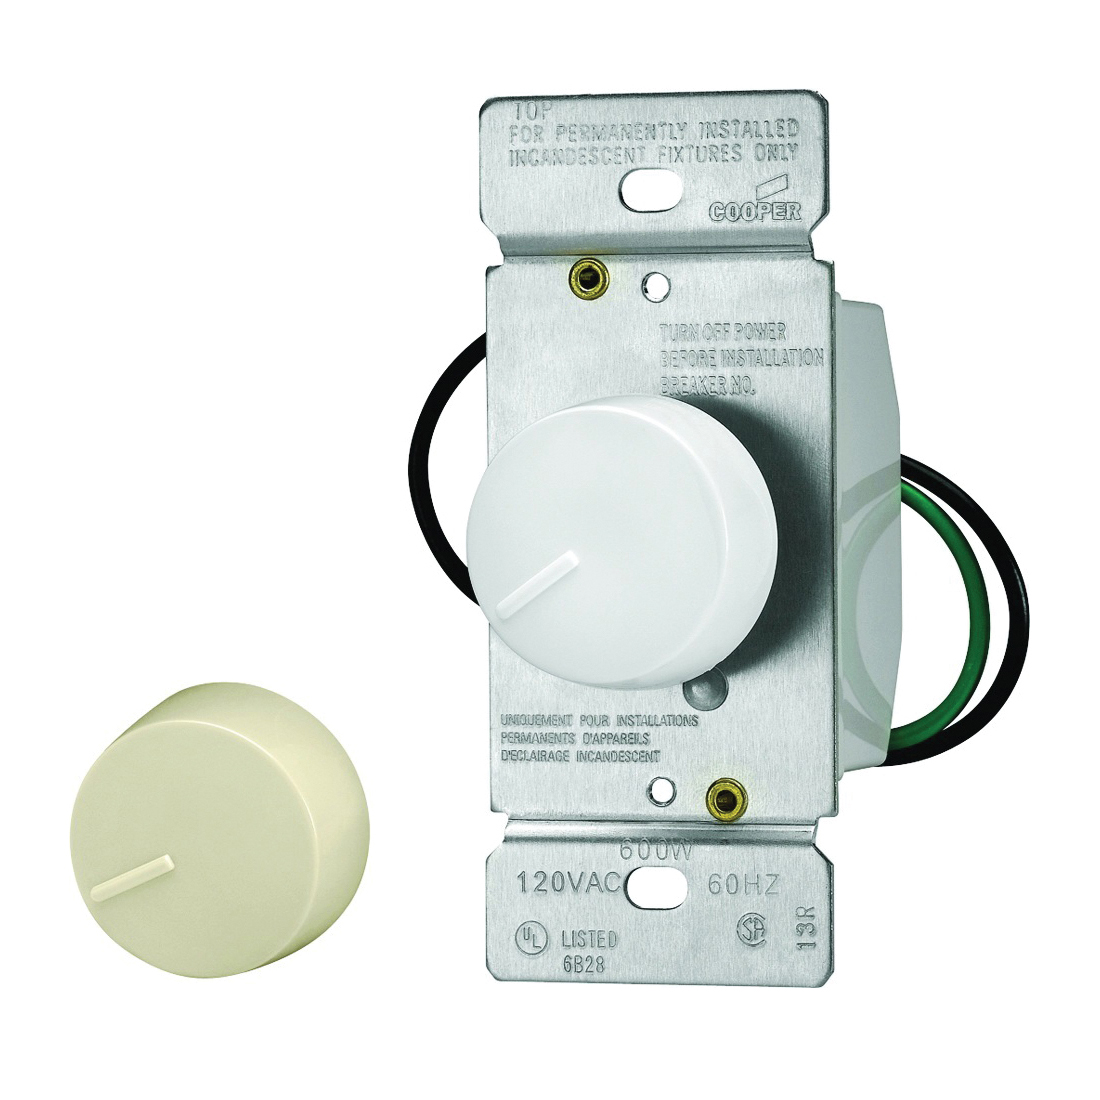 Picture of Eaton Wiring Devices RI061-VW-K2 Rotary Dimmer, 120 V, 600 W, Halogen, Incandescent Lamp, 3-Way, Ivory/White